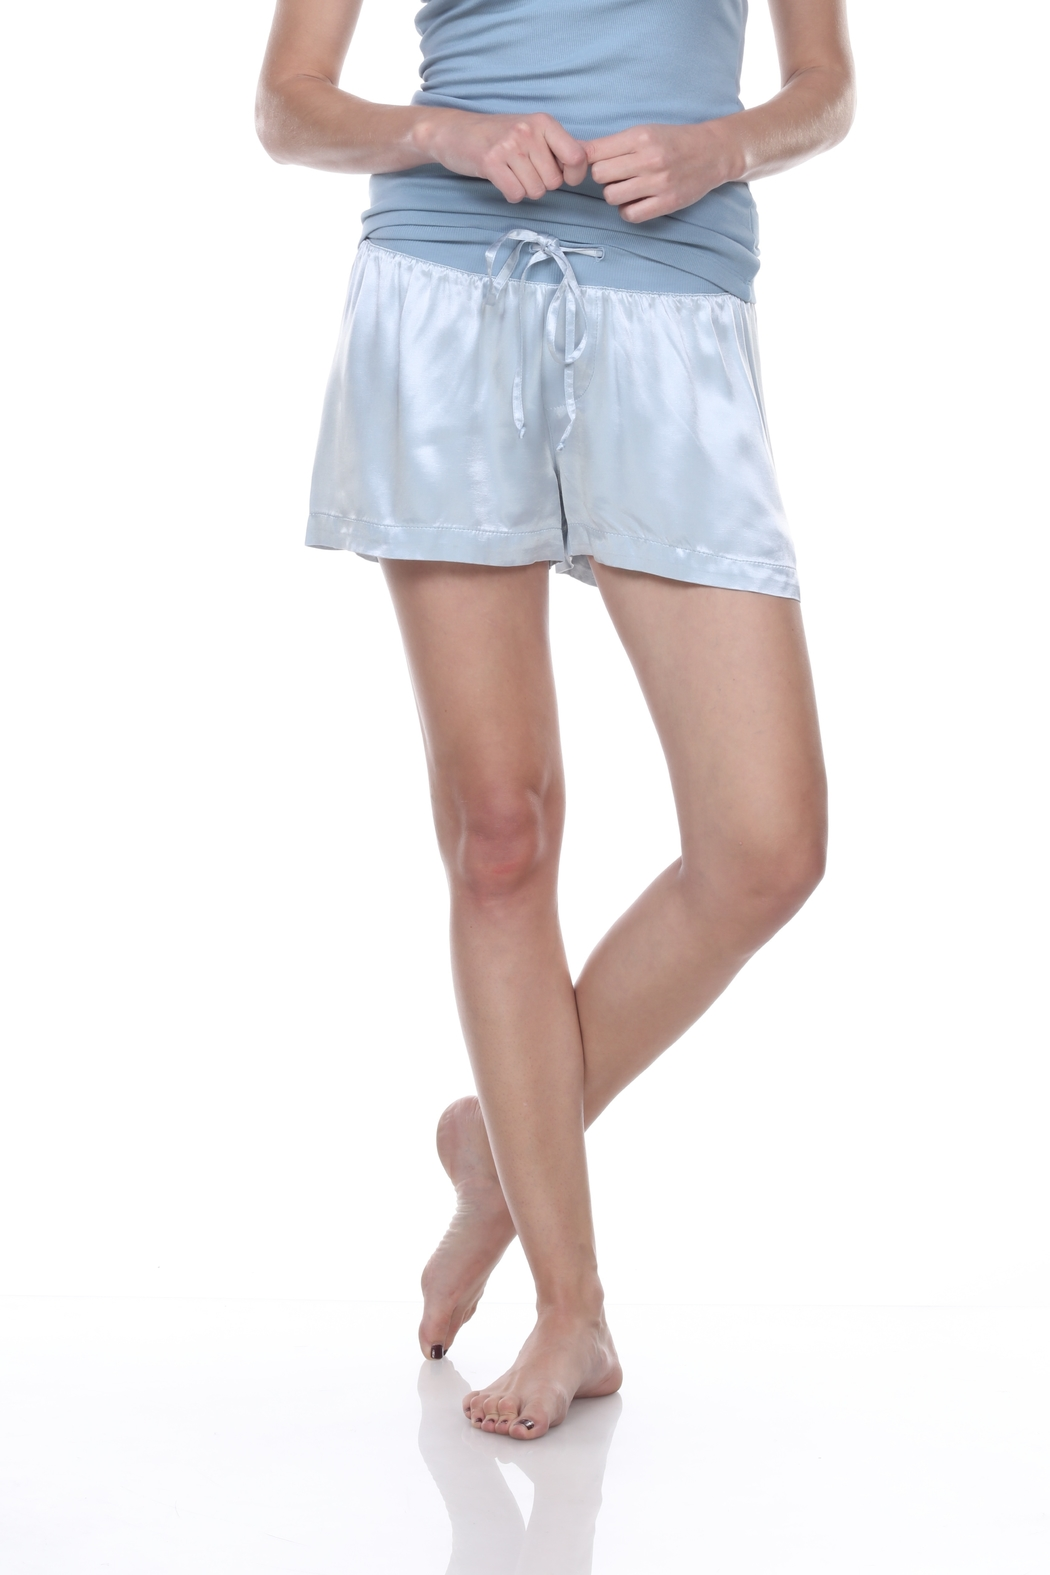 PJHARLOW Satin Short With Rib Knit Waistband And Adjustable Drawstring - Front Cropped Image